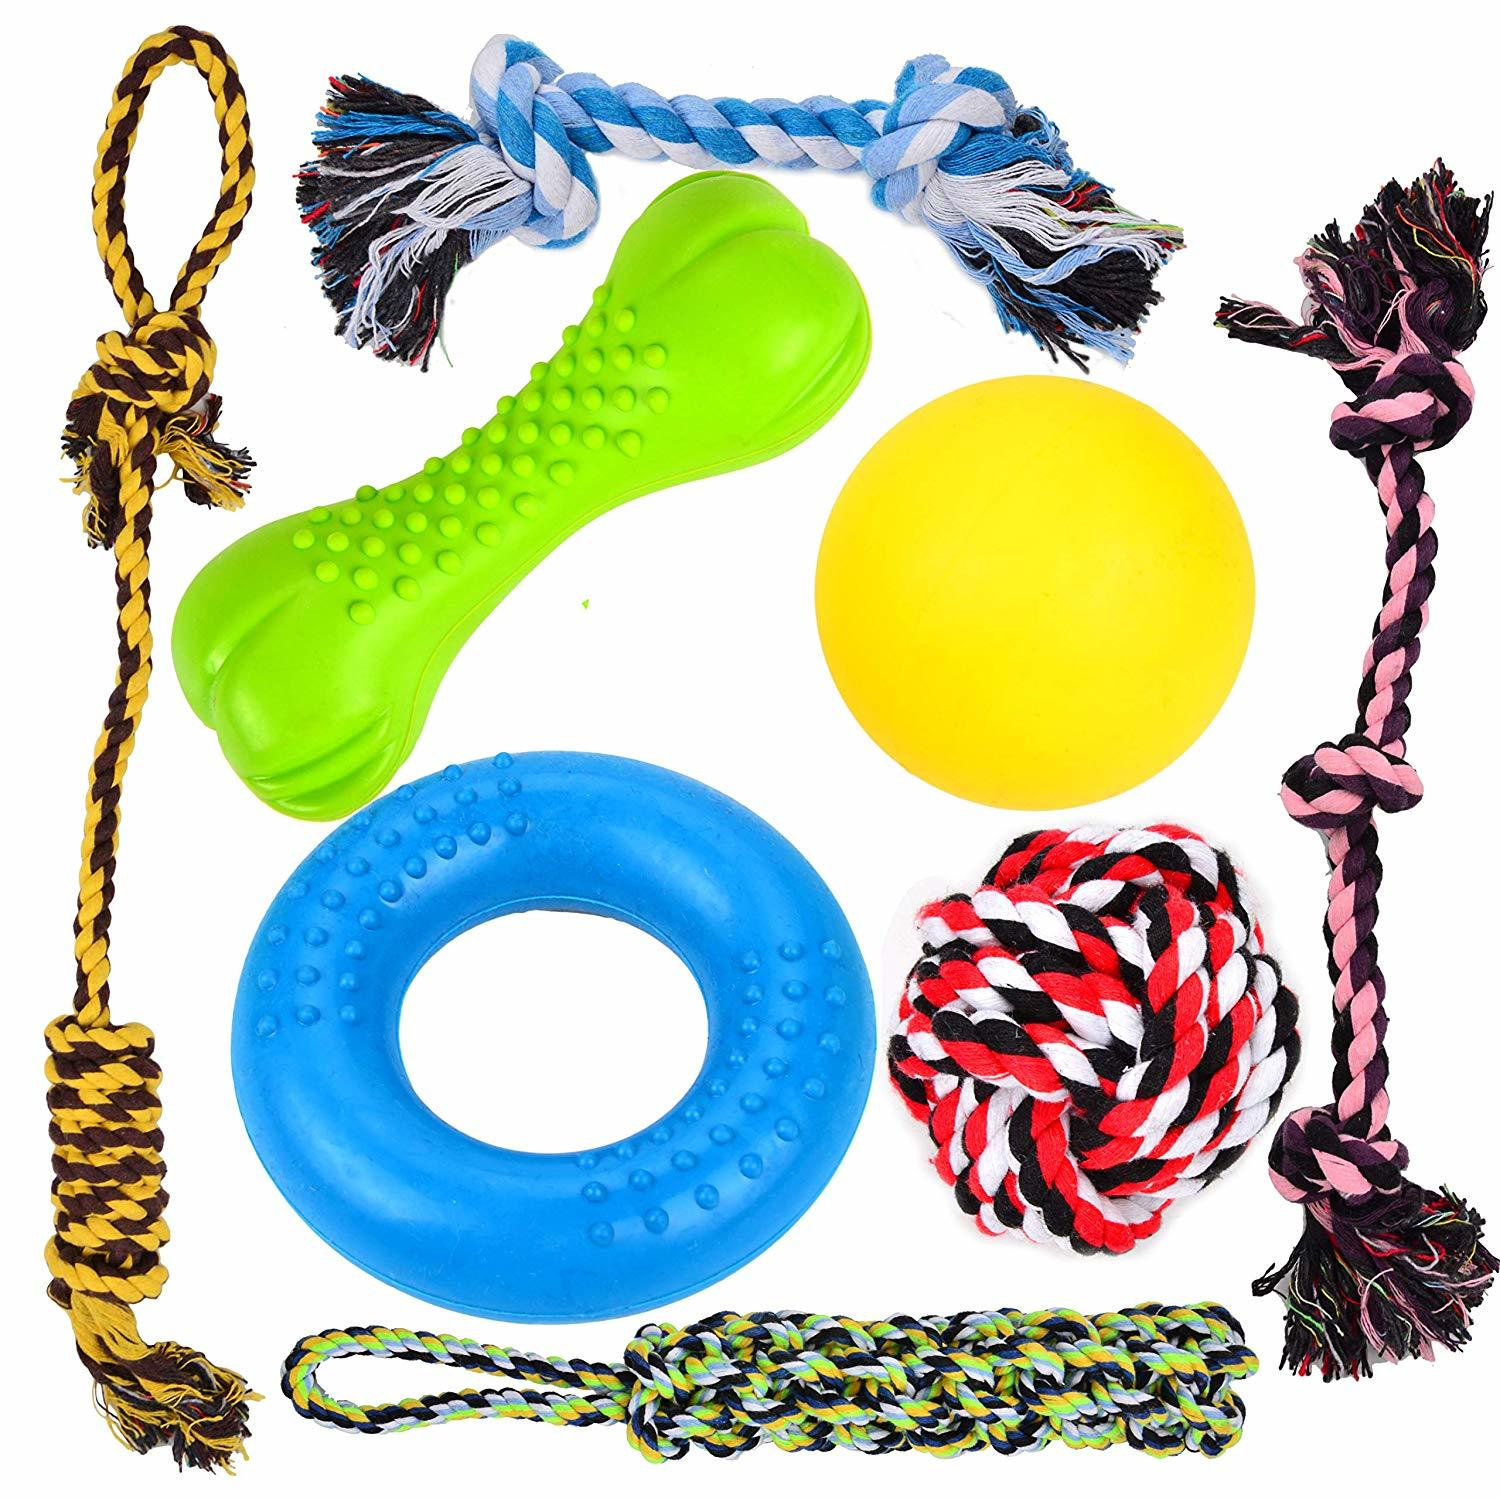 Puppy Toys Best Chew Toys For Teething Puppies Review